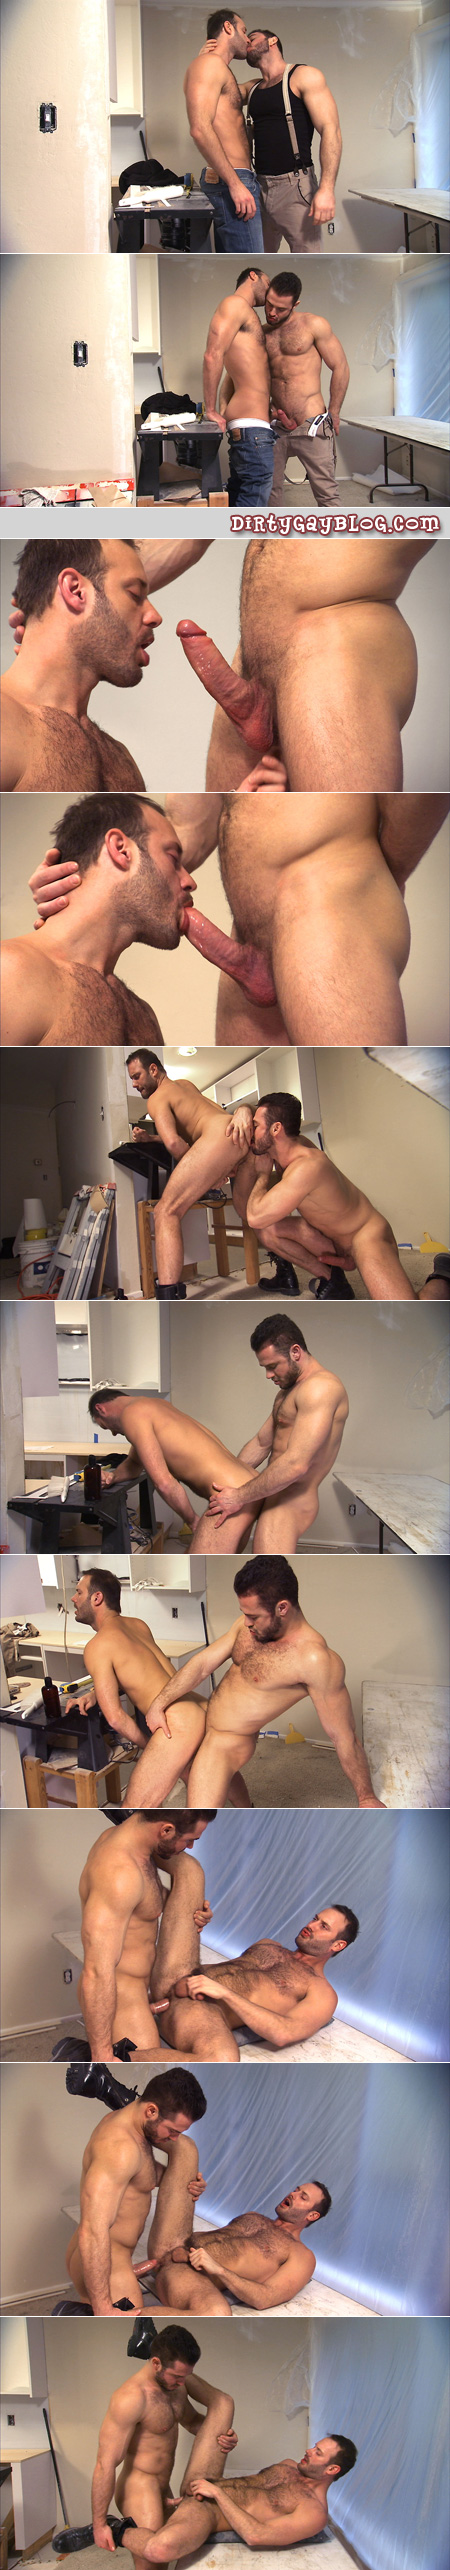 Hairy, muscular contractors in black boots secretly have gay sex on the job site.